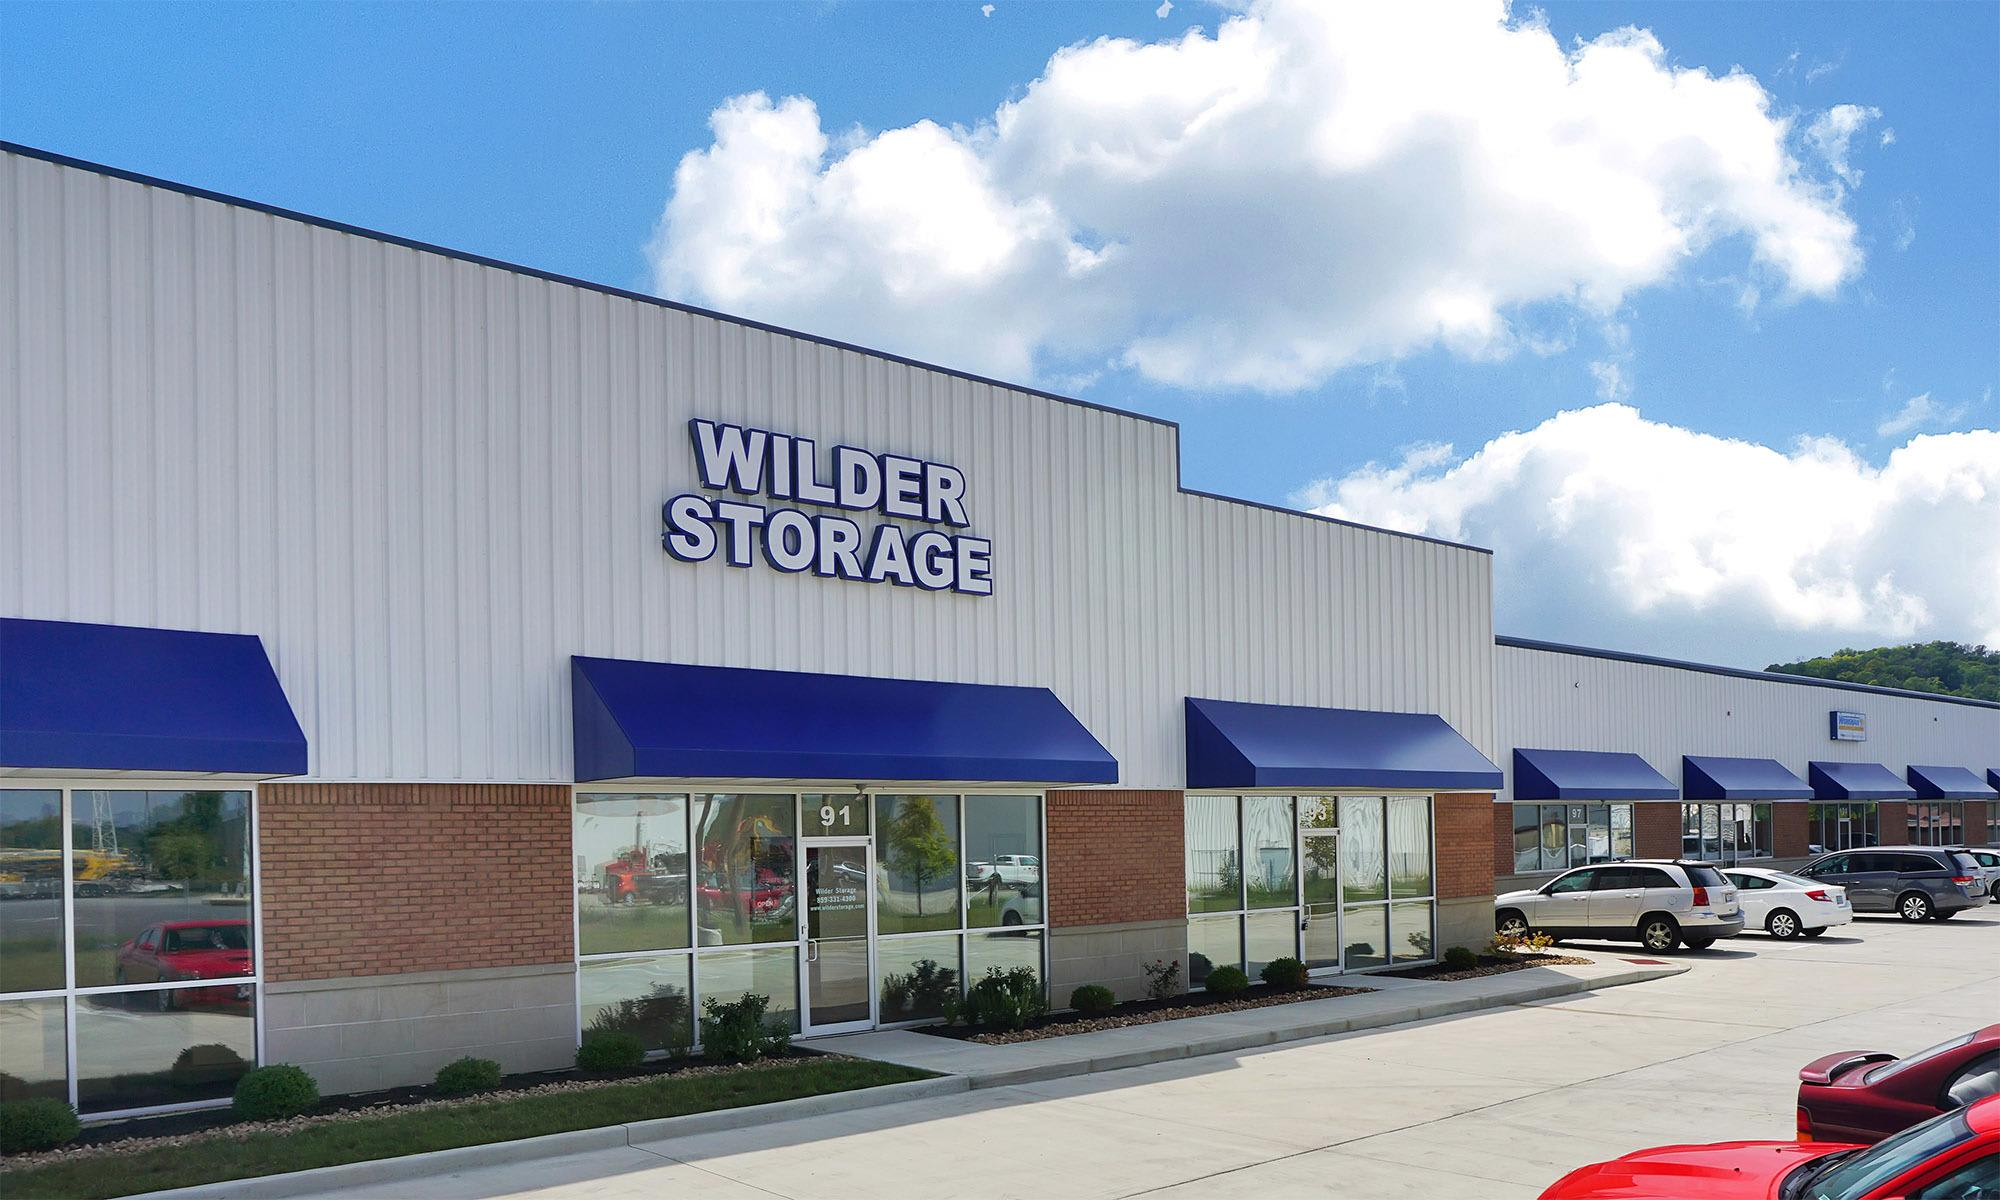 Self storage in Wilder KY